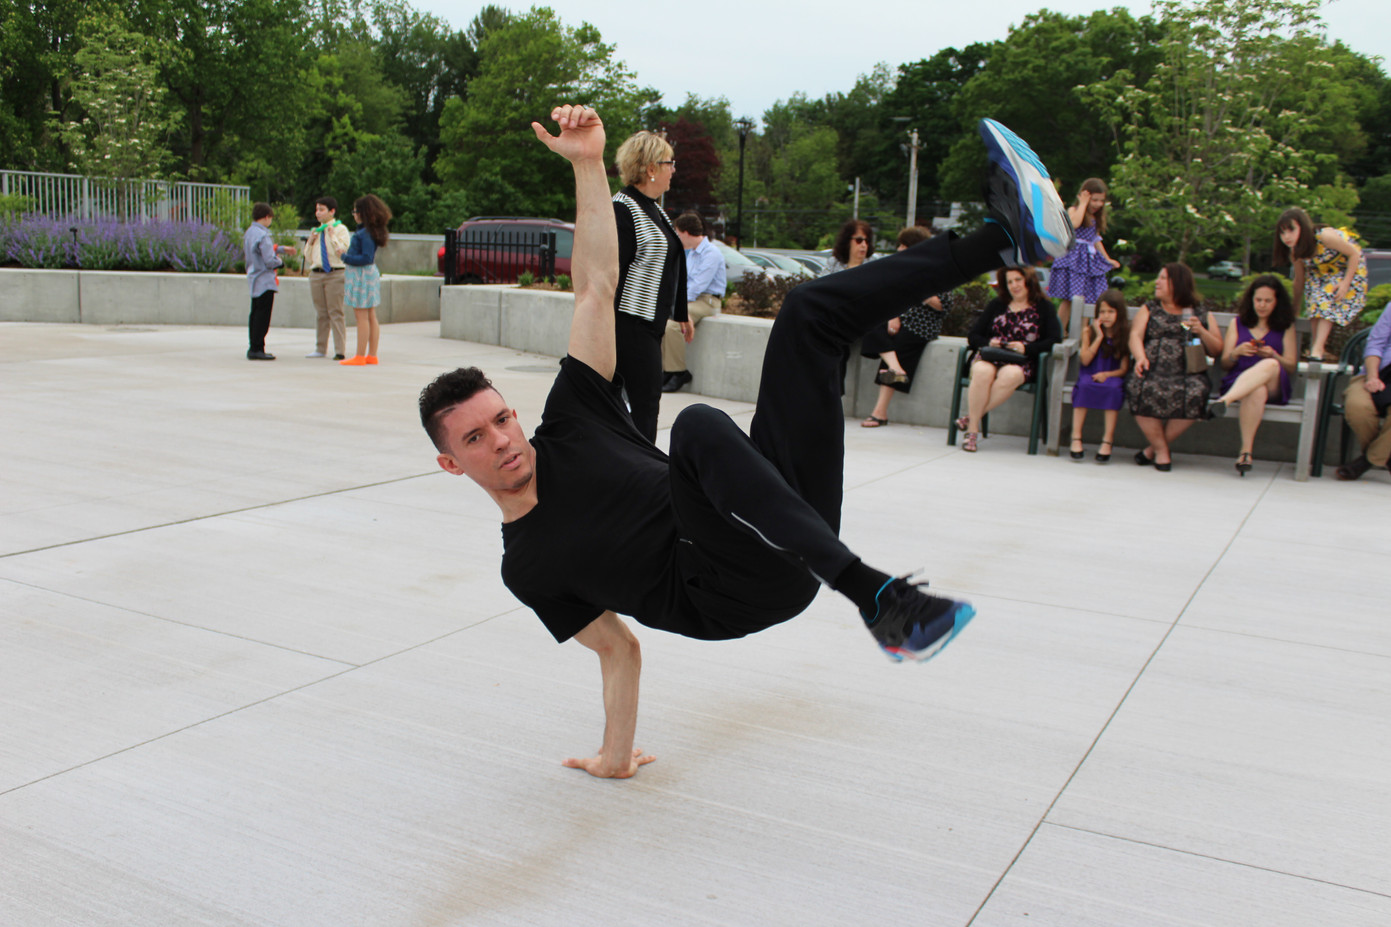 Bboy-Break-Dance.JPG